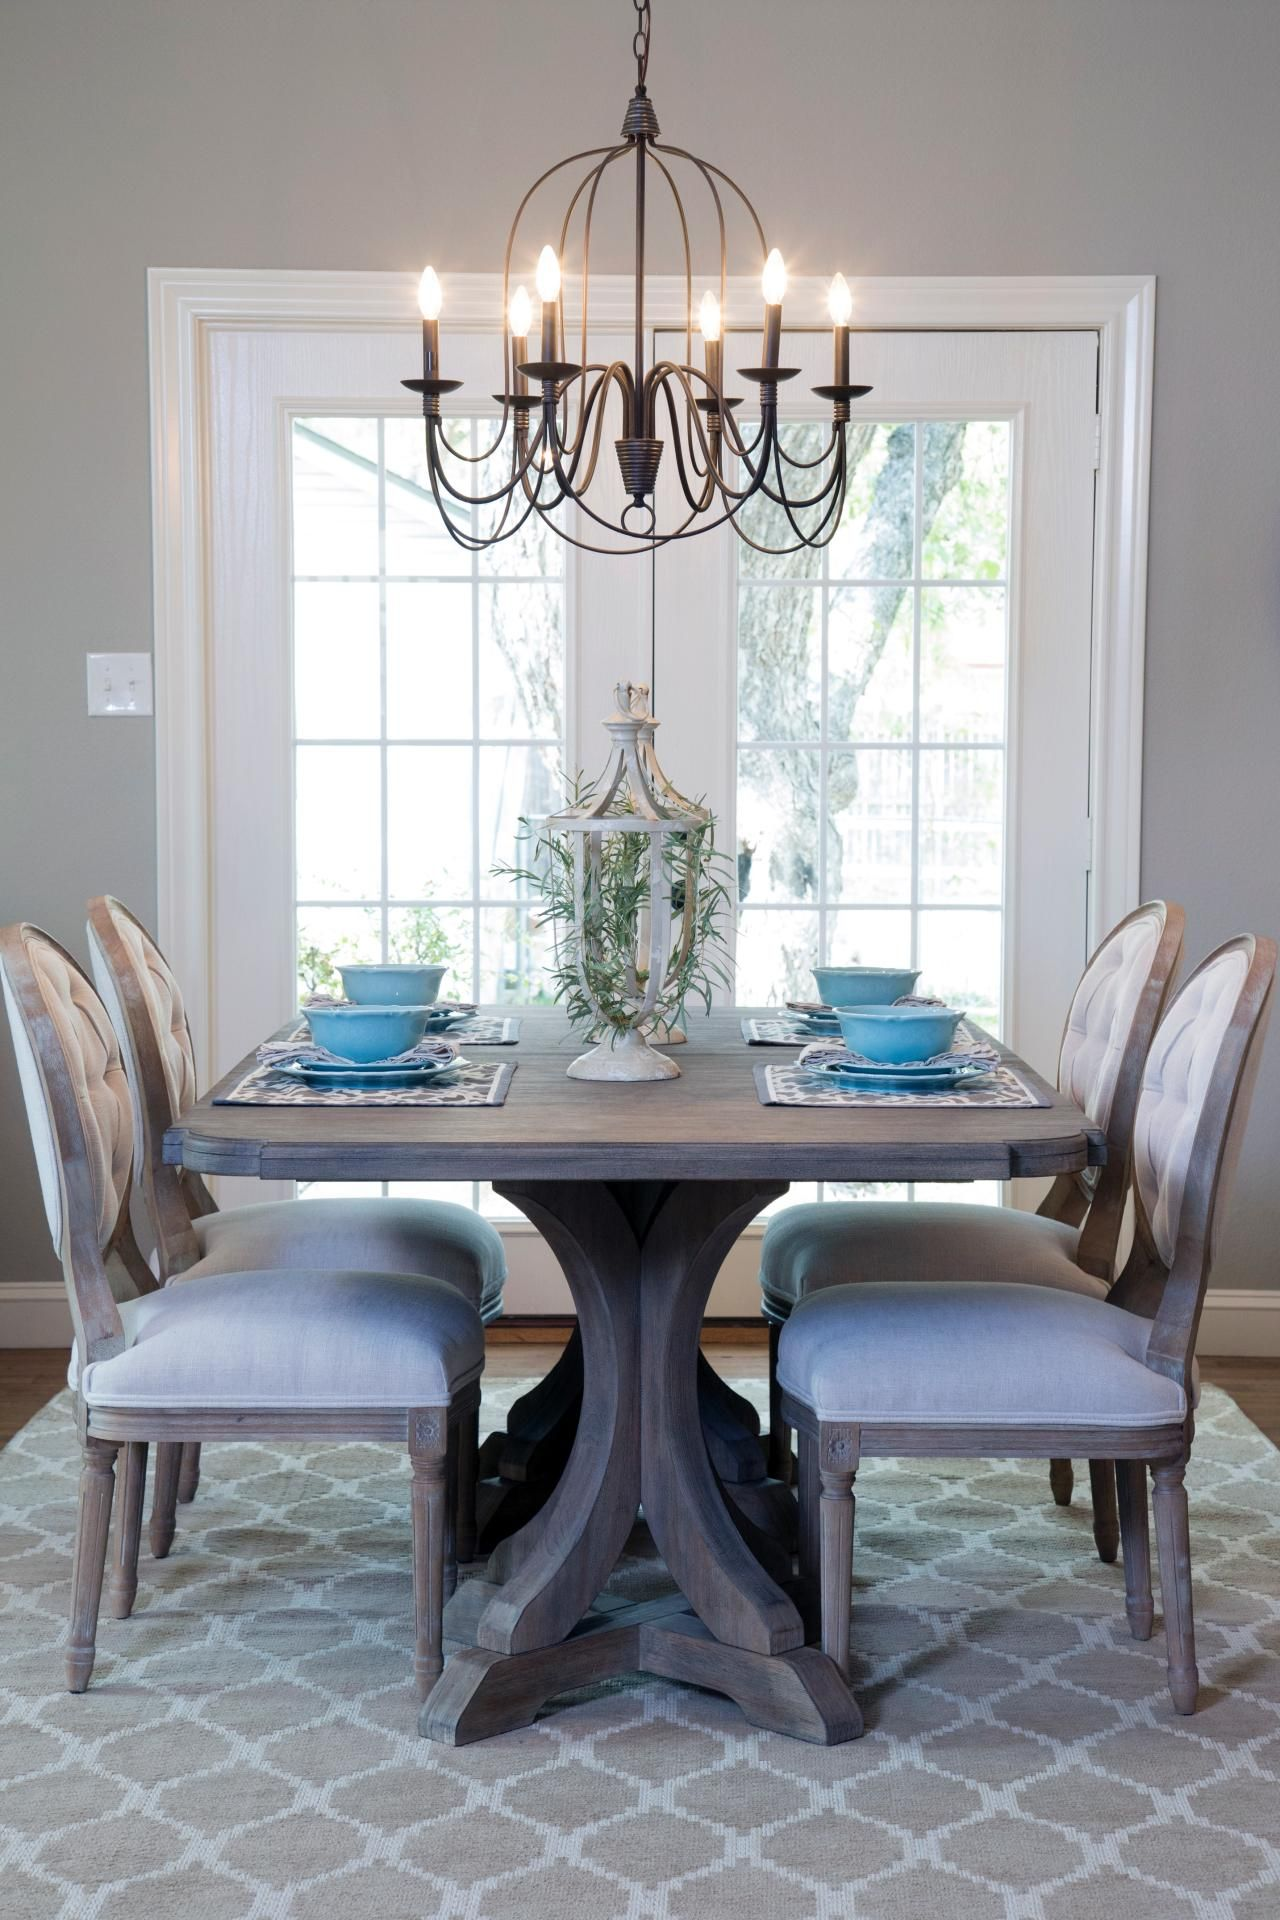 Some Of The Best Dining Room Lighting Inspirations Are Here If You Are An Interior De Farmhouse Dining Room Farmhouse Dining Room Lighting Vintage Dining Room